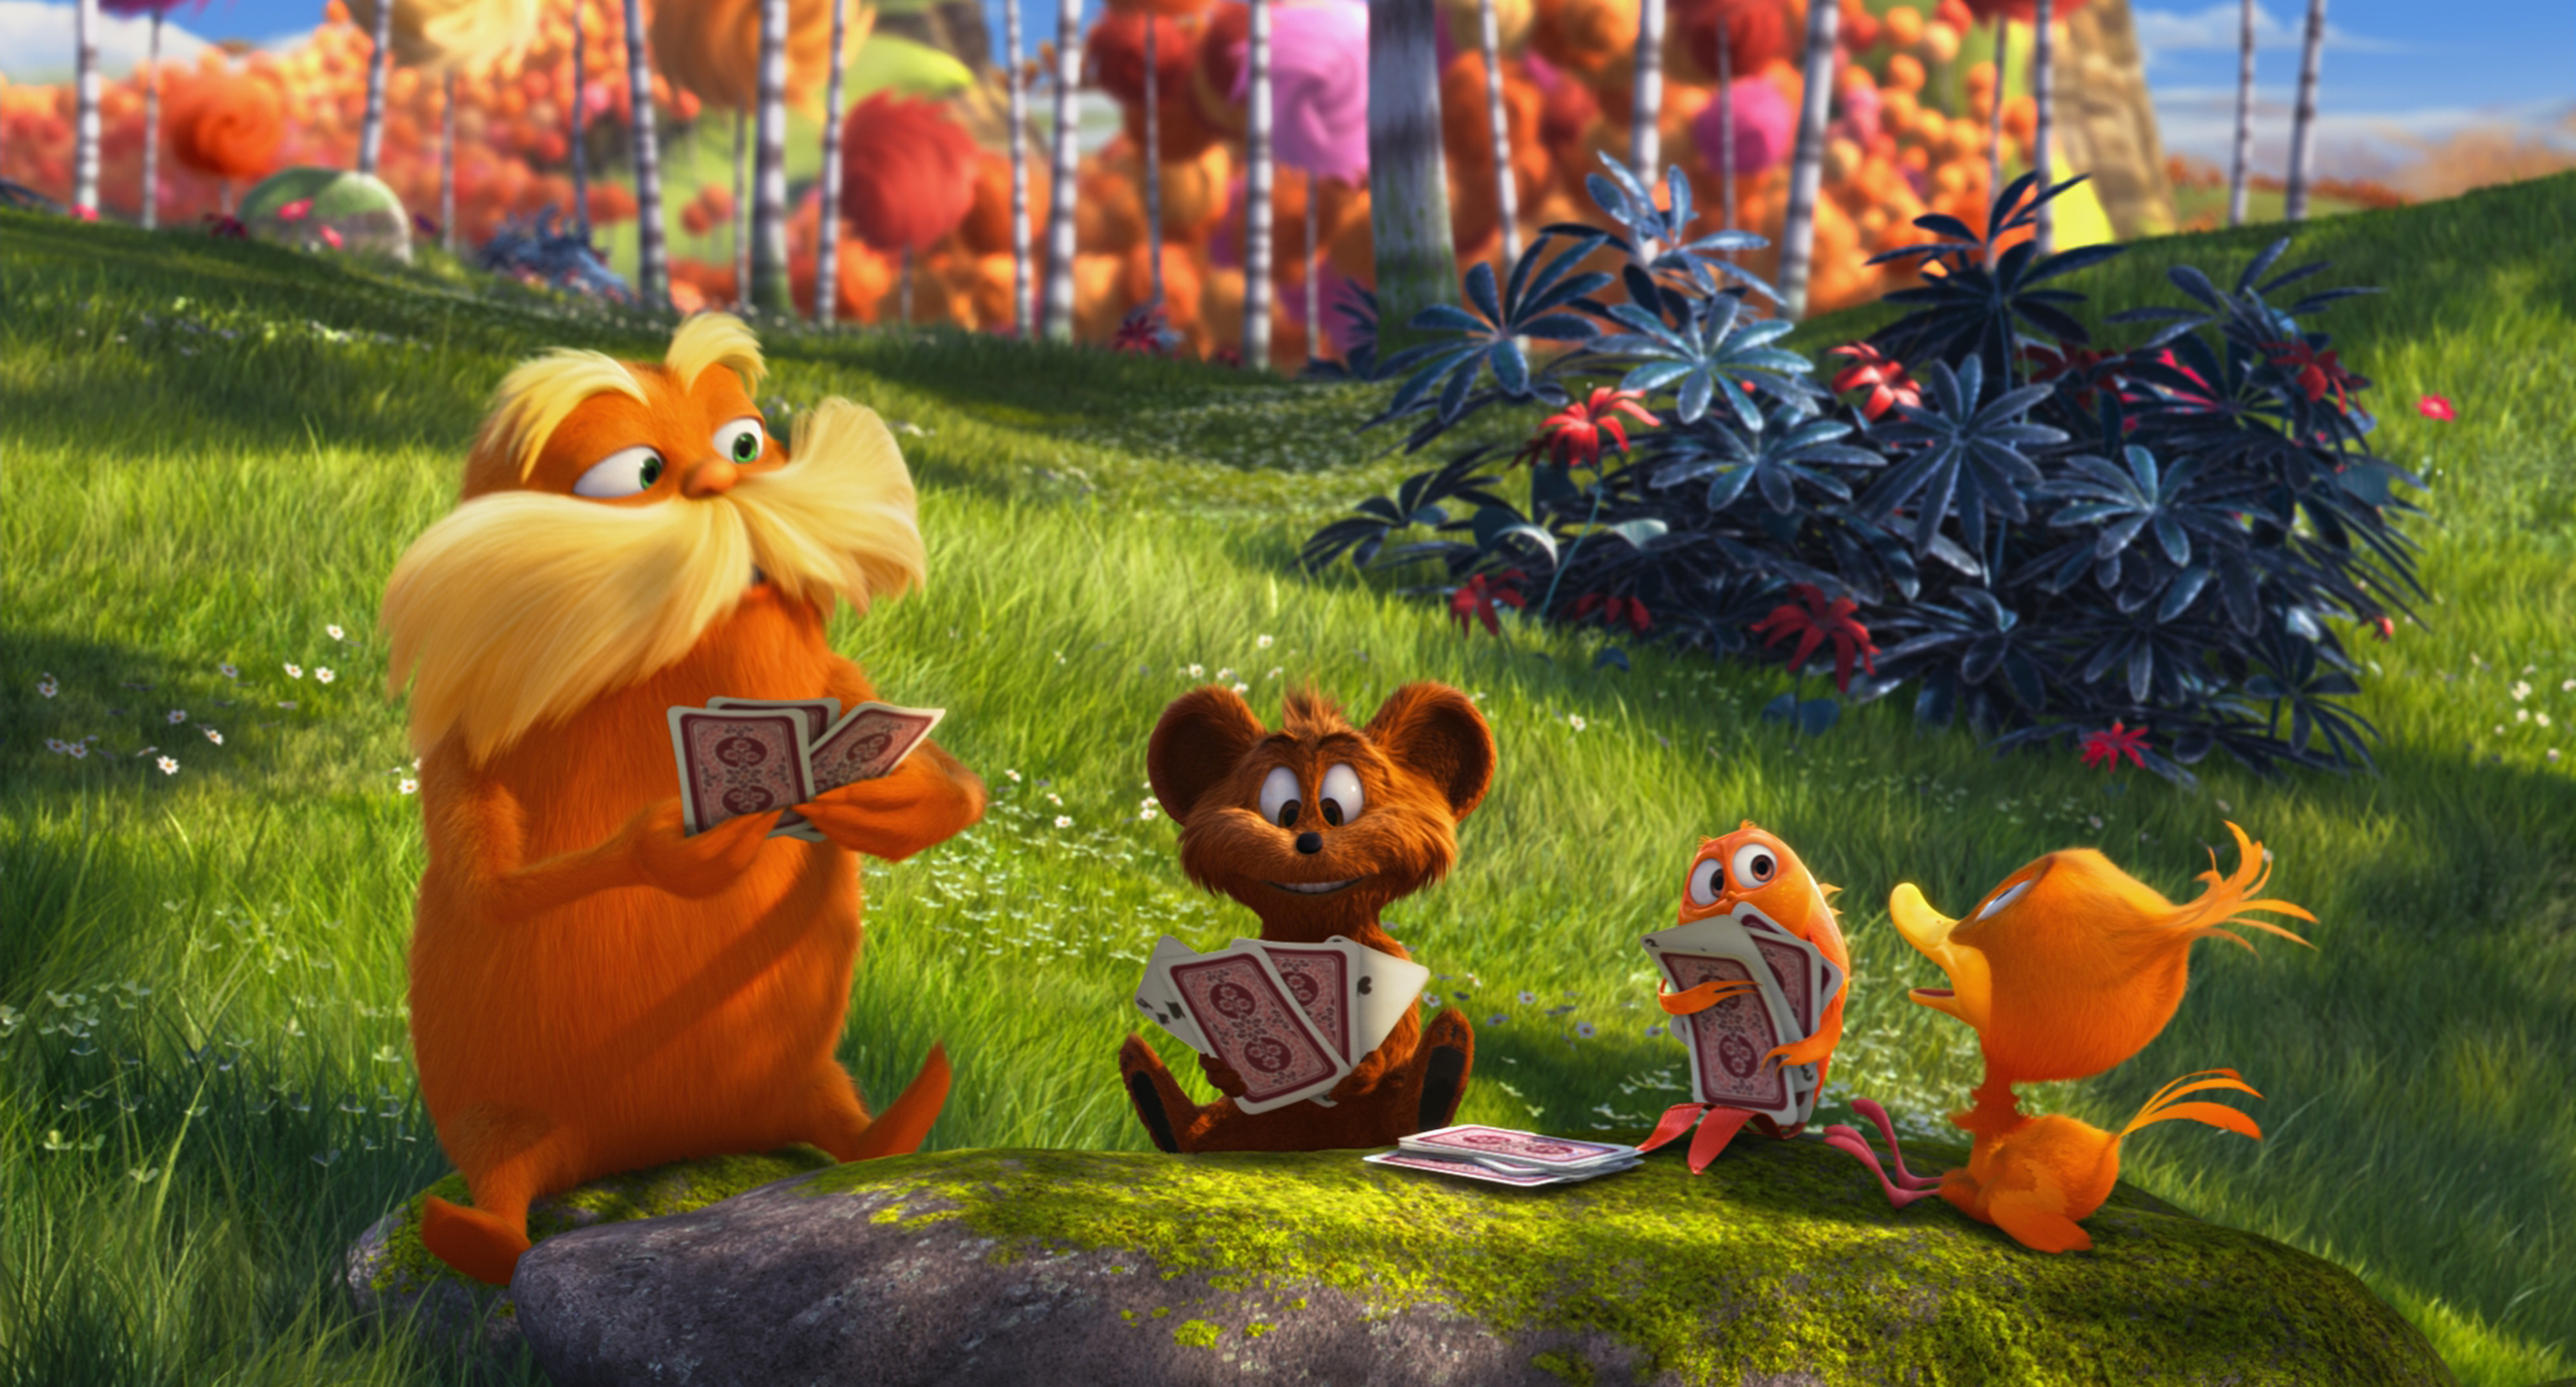 Dr Seuss The Lorax To Open In 269 Imax 3d Screens Upon